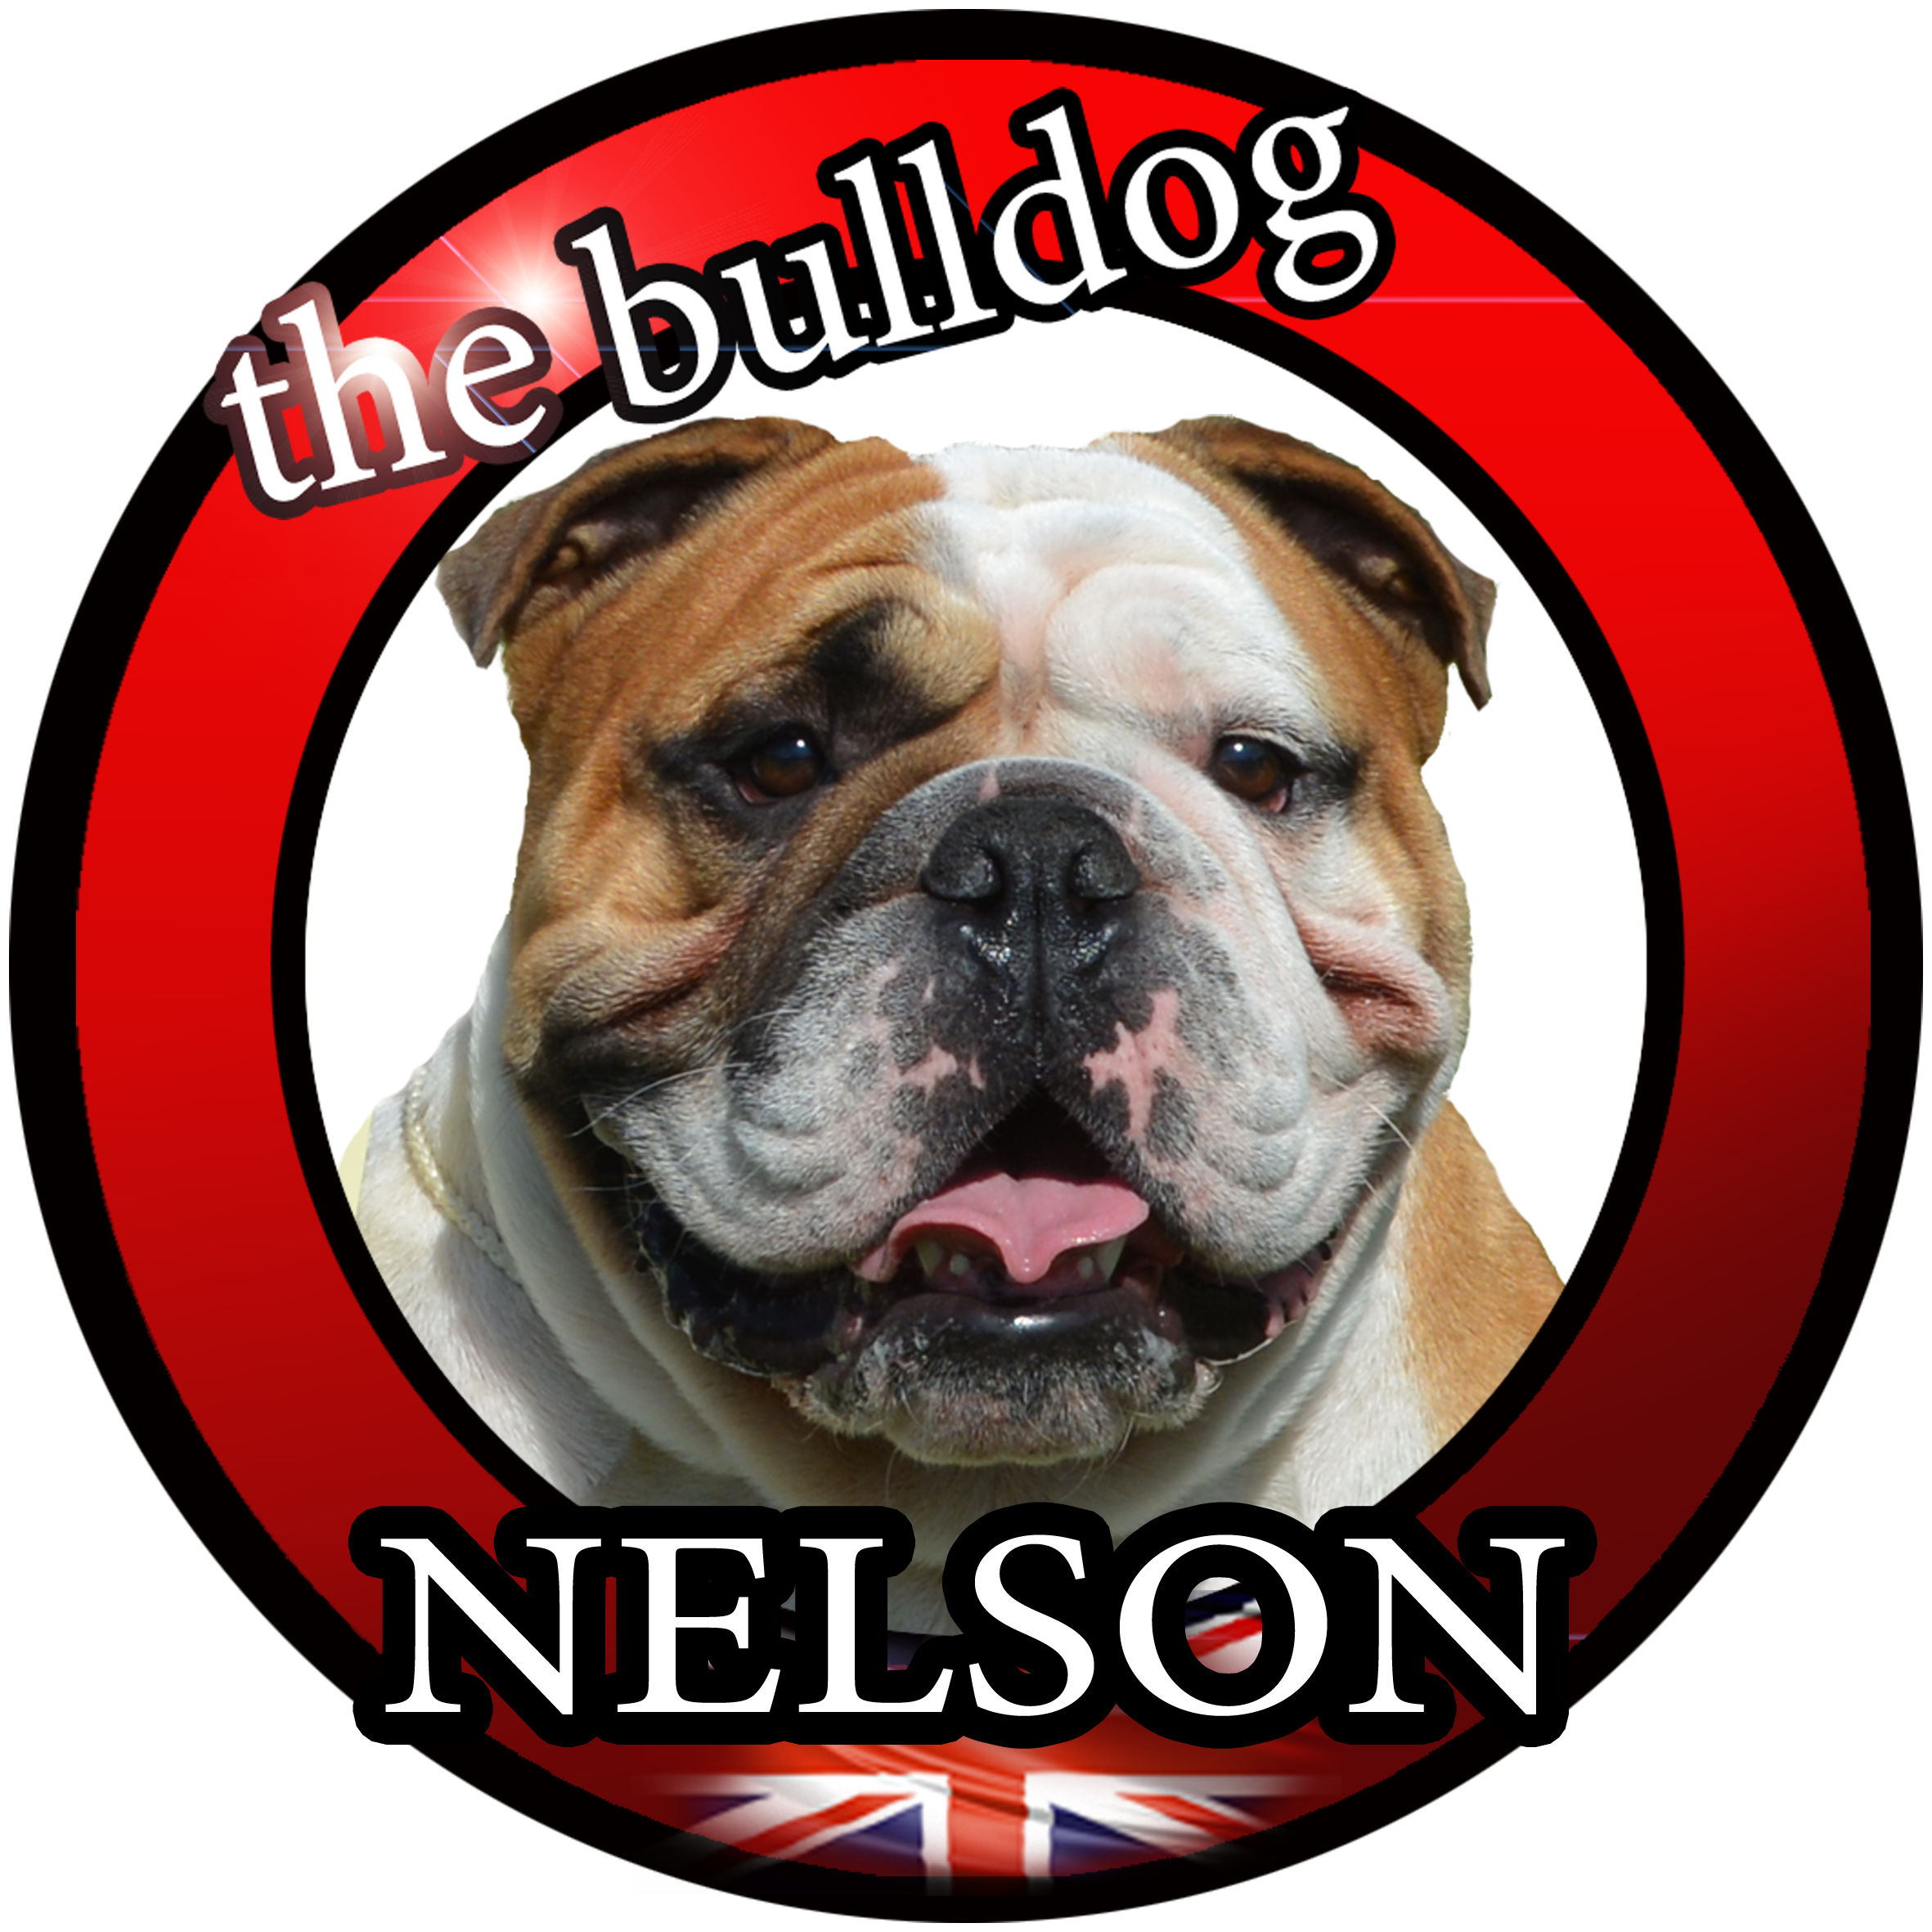 Nelson the bulldog